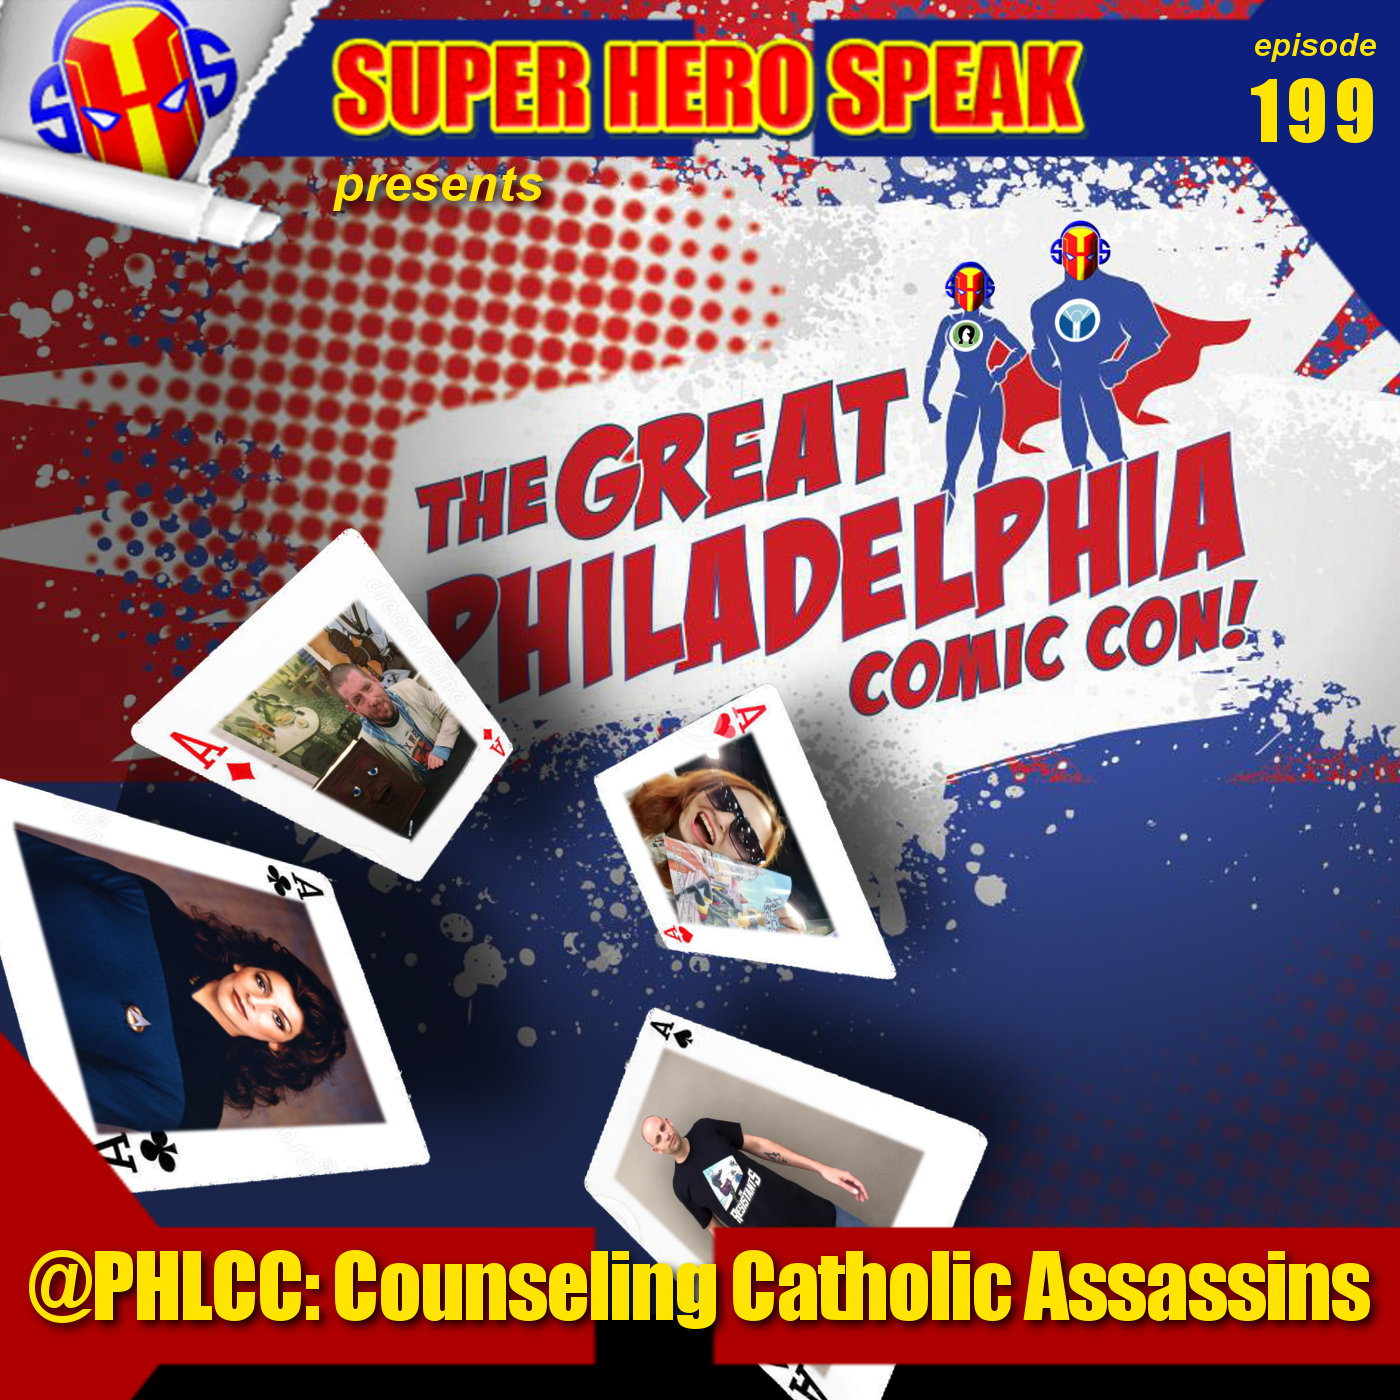 #199: @phlcc Counseling Catholic Assassins